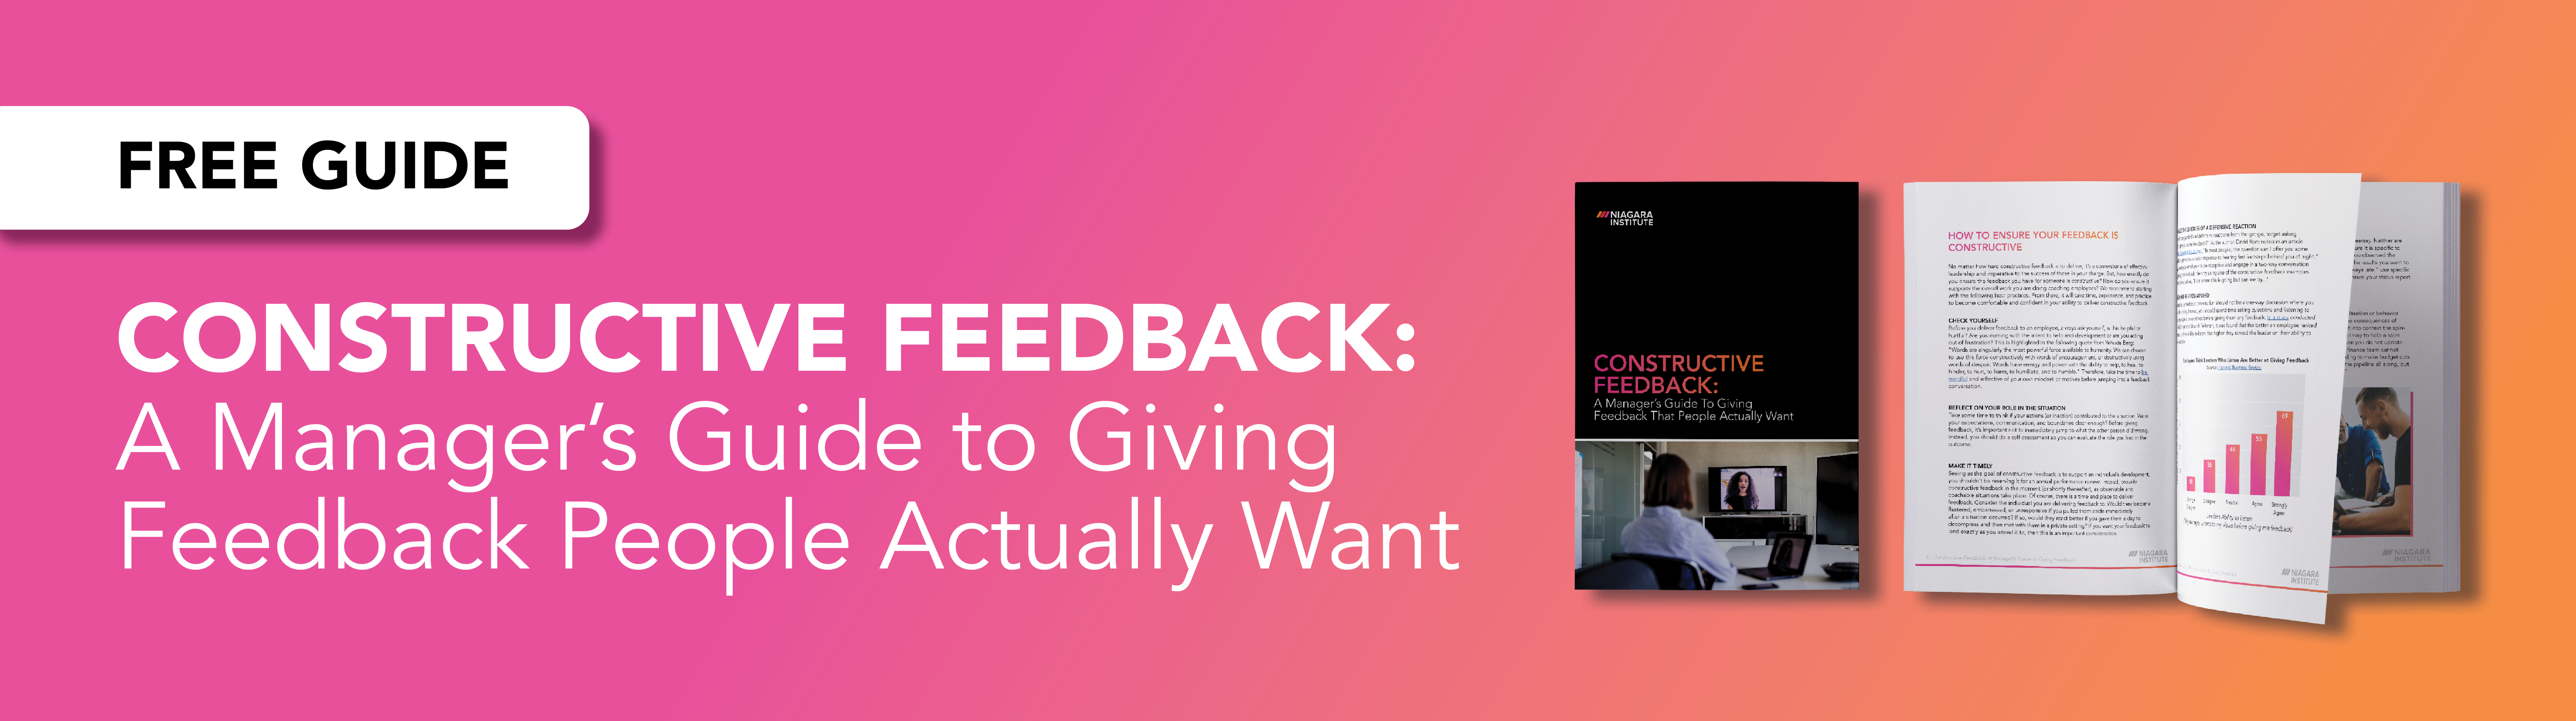 A Managers' Guide to Giving Constructive Feedback